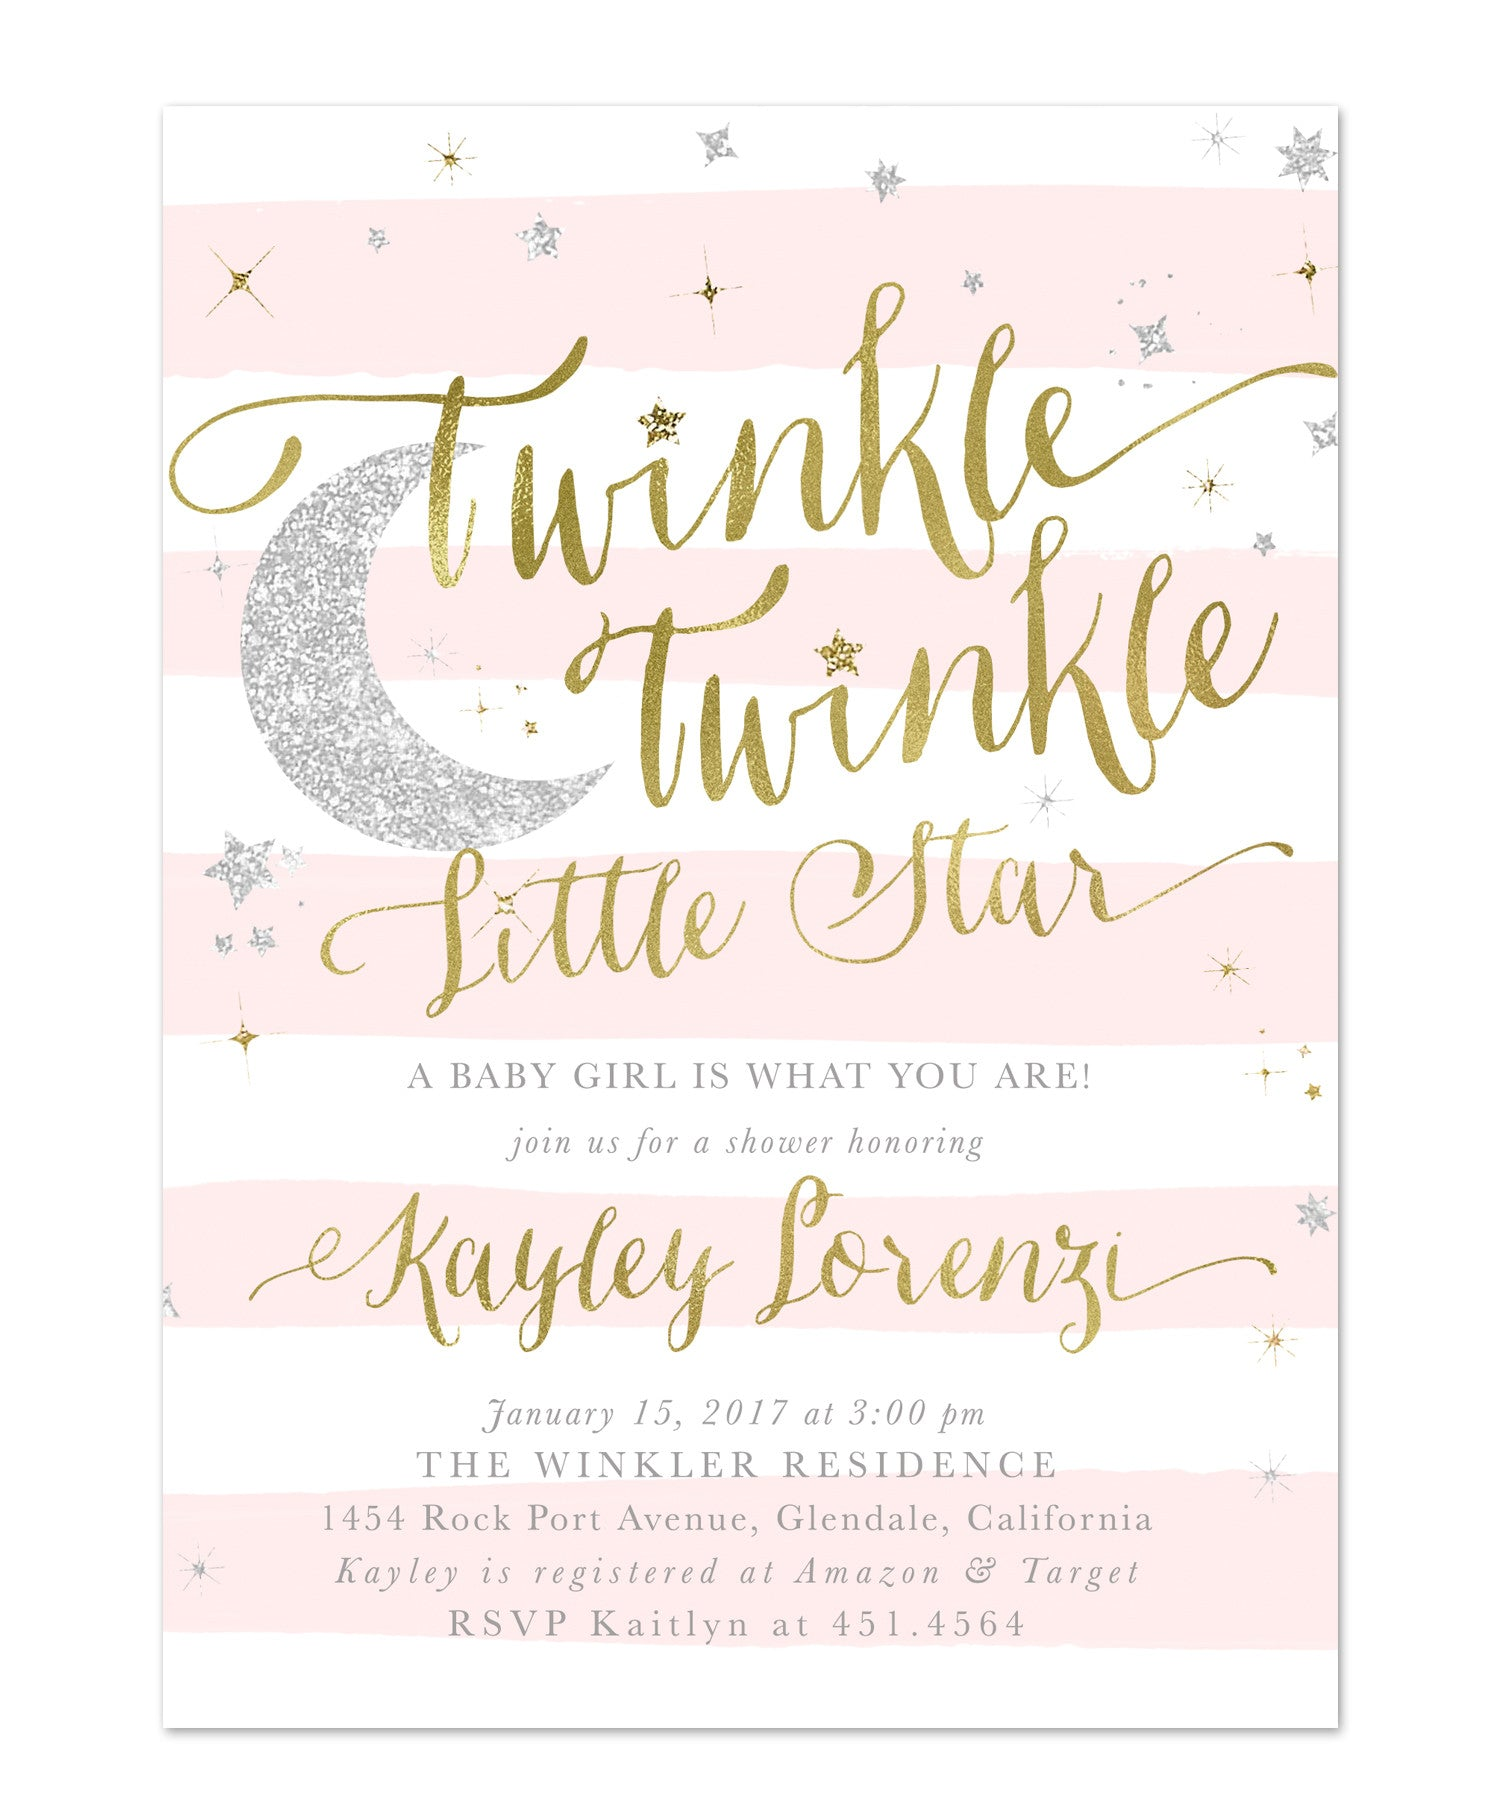 twinkle twinkle little star girl baby shower or sprinkle invitation